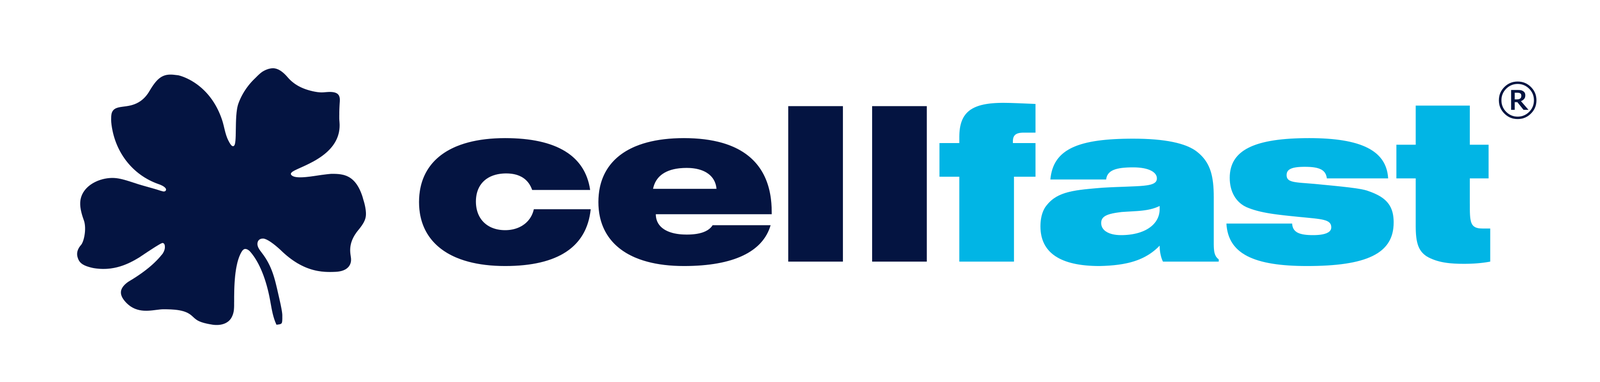 cellfast_logo.png